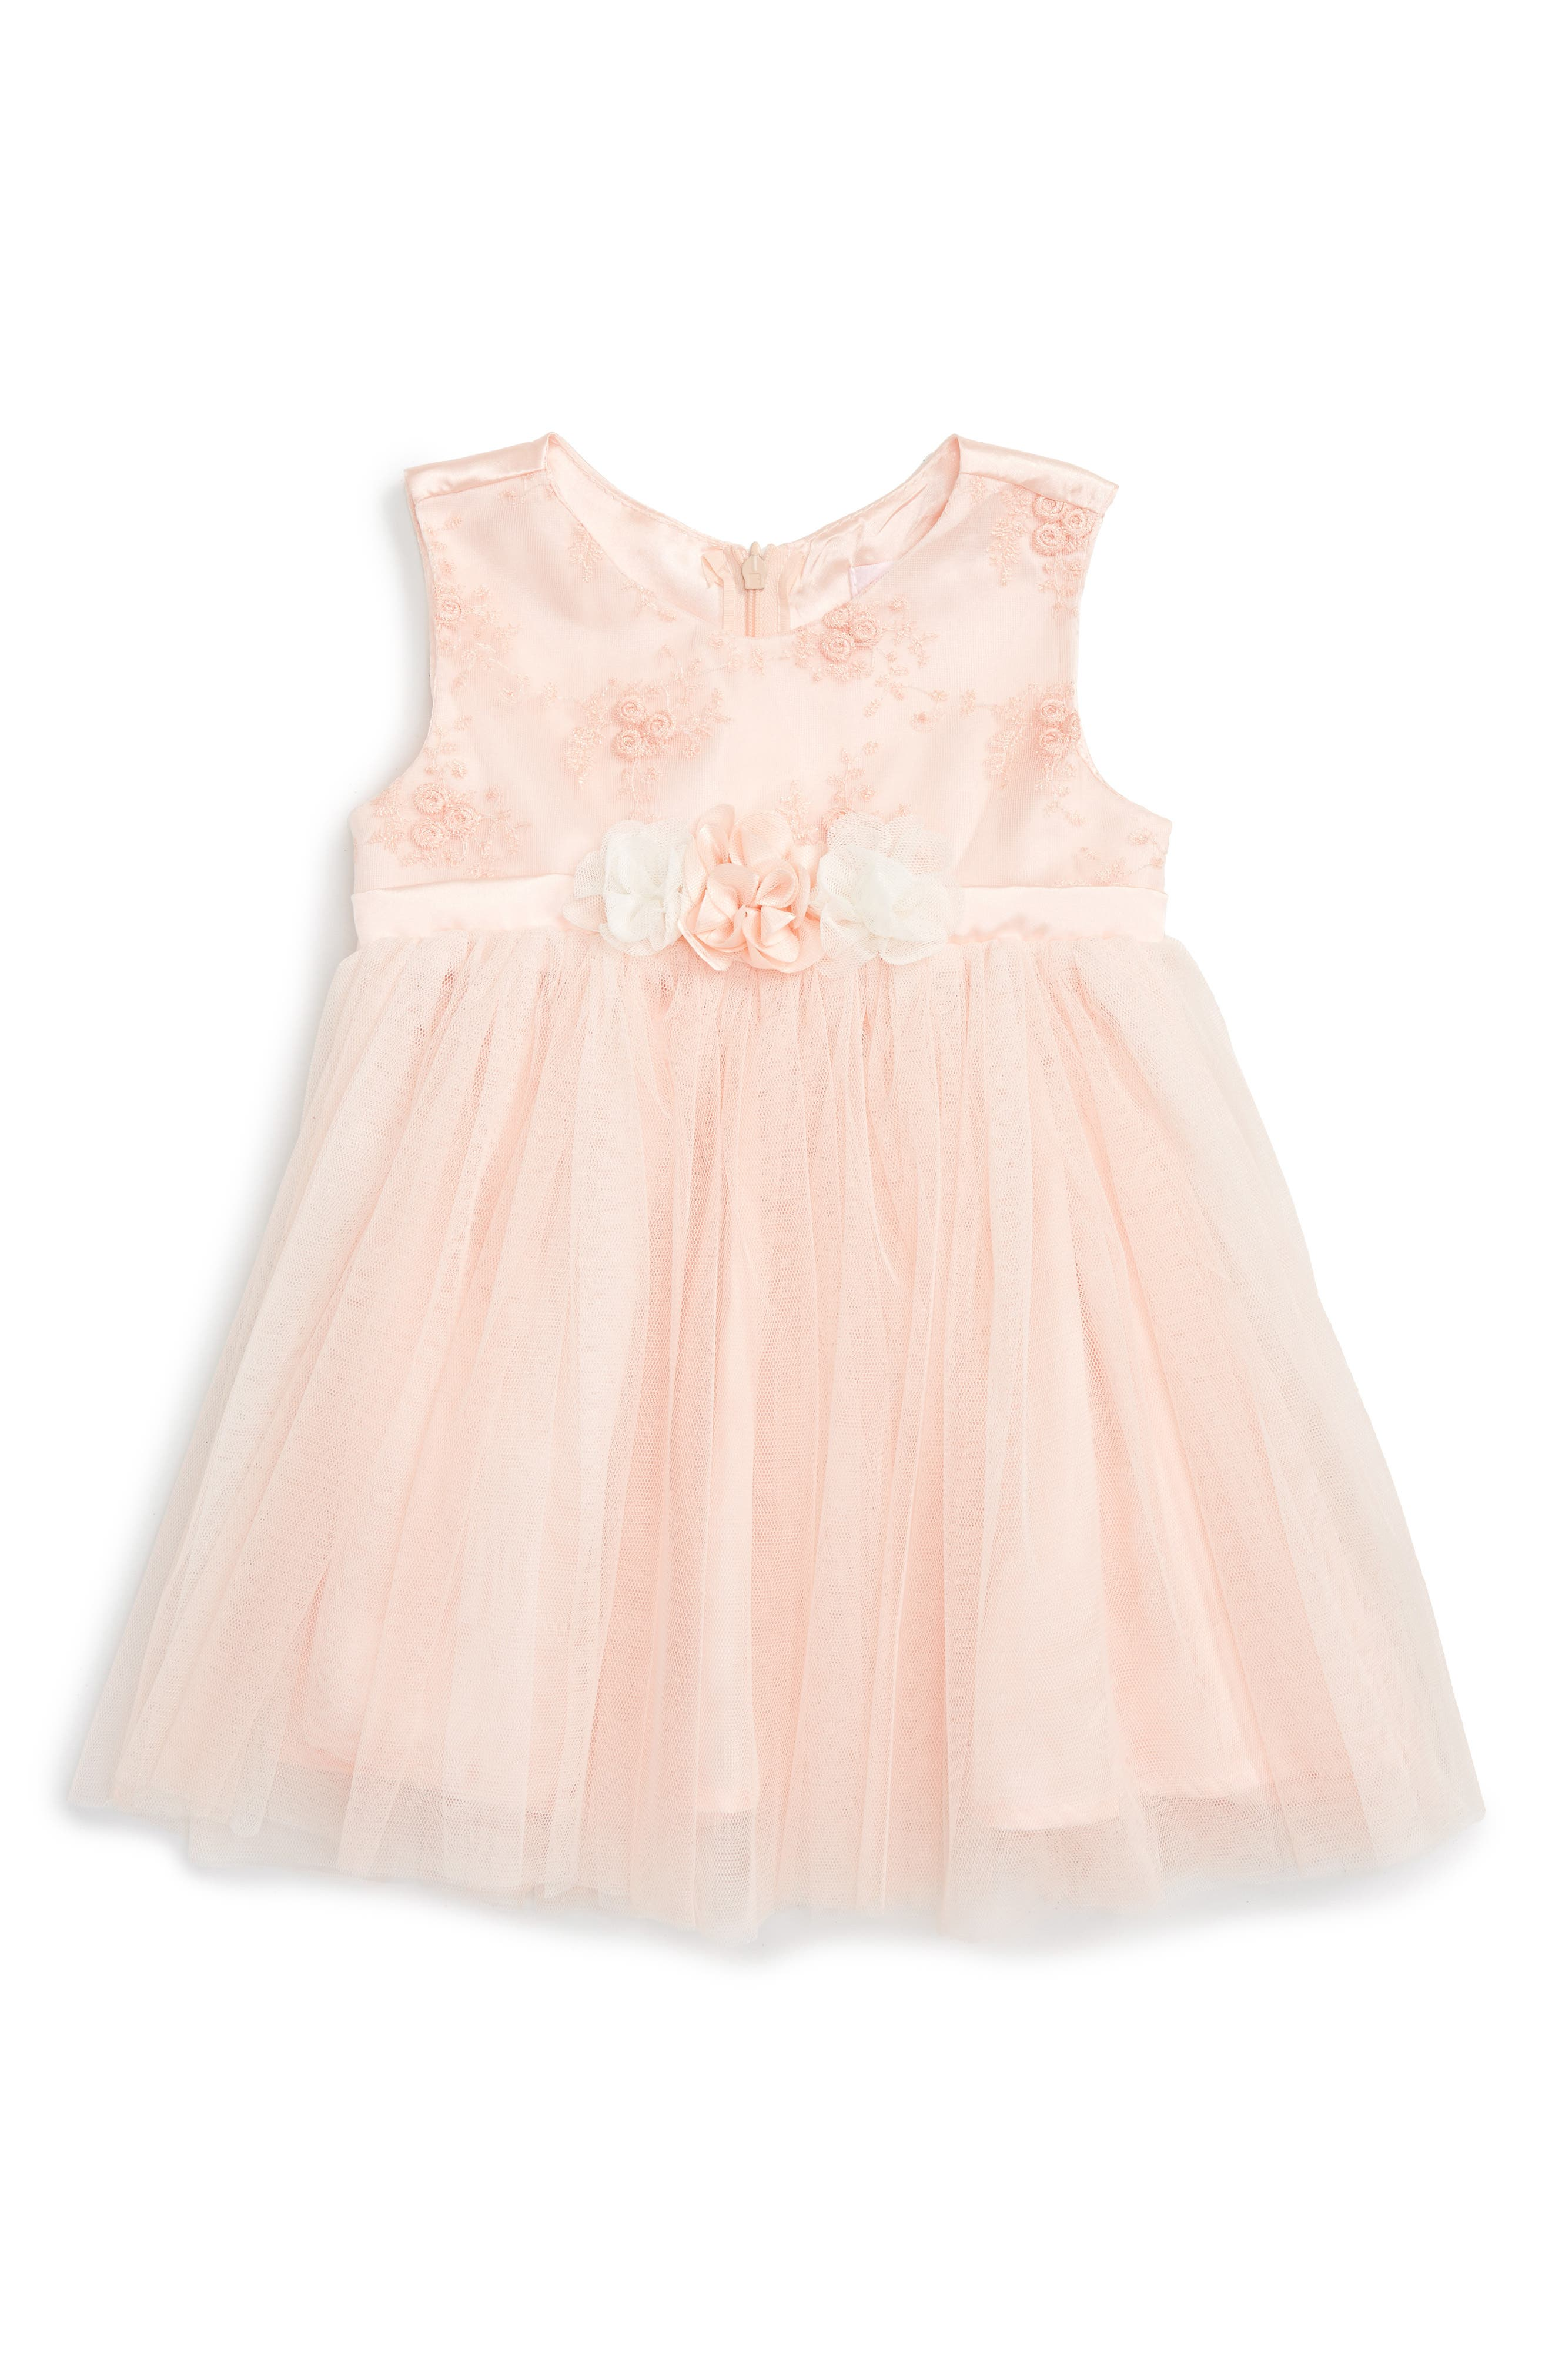 Floral Embroidered Tulle Dress,                             Main thumbnail 1, color,                             PEACH